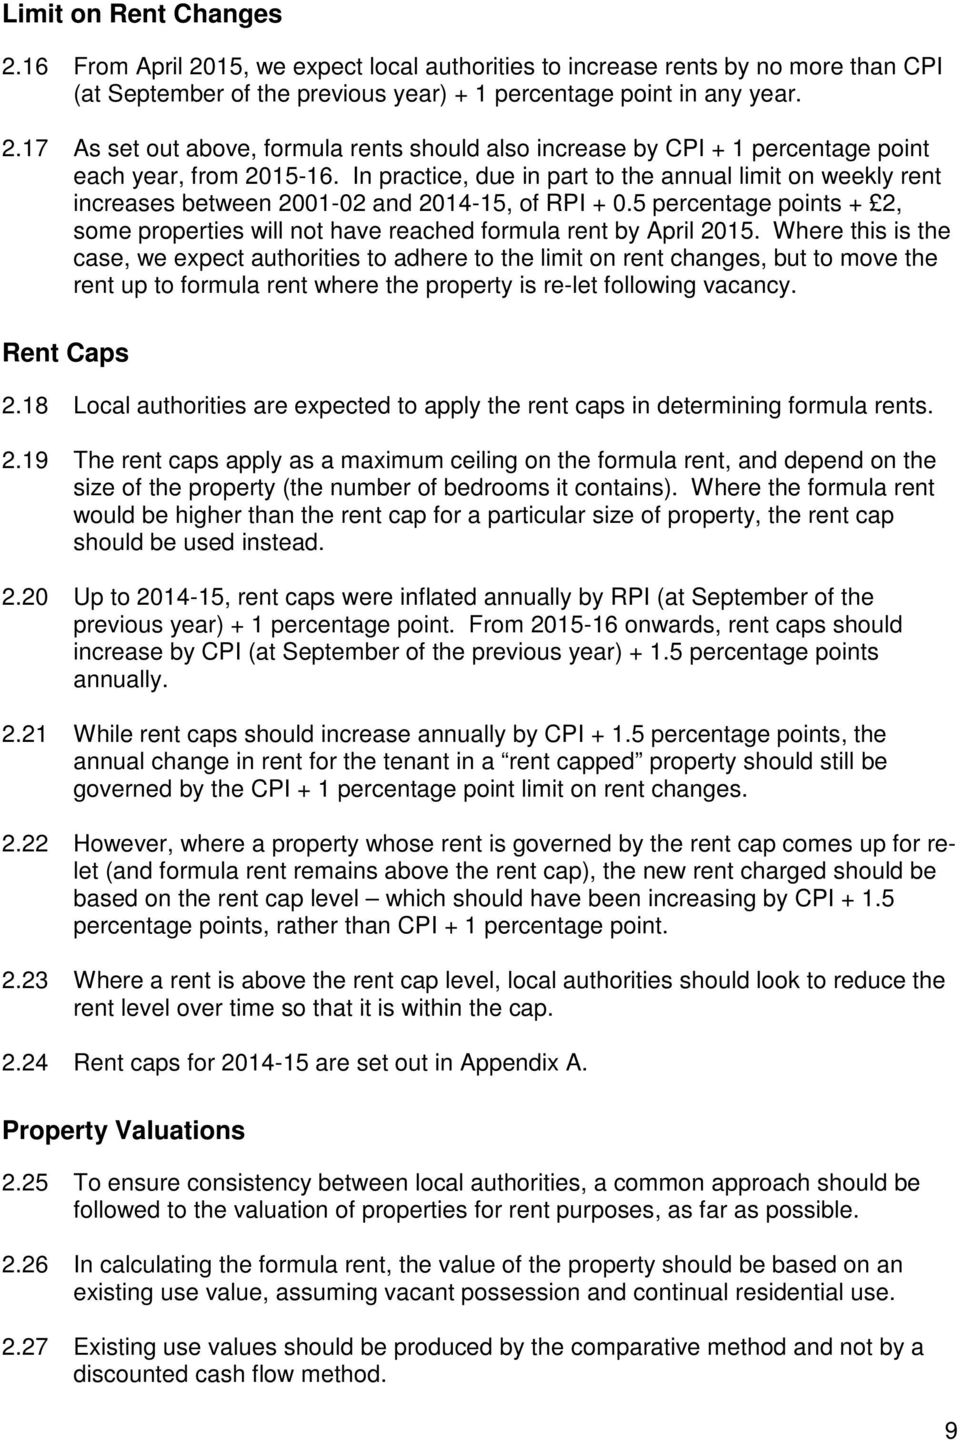 Where this is the case, we expect authorities to adhere to the limit on rent changes, but to move the rent up to formula rent where the property is re-let following vacancy. Rent Caps 2.